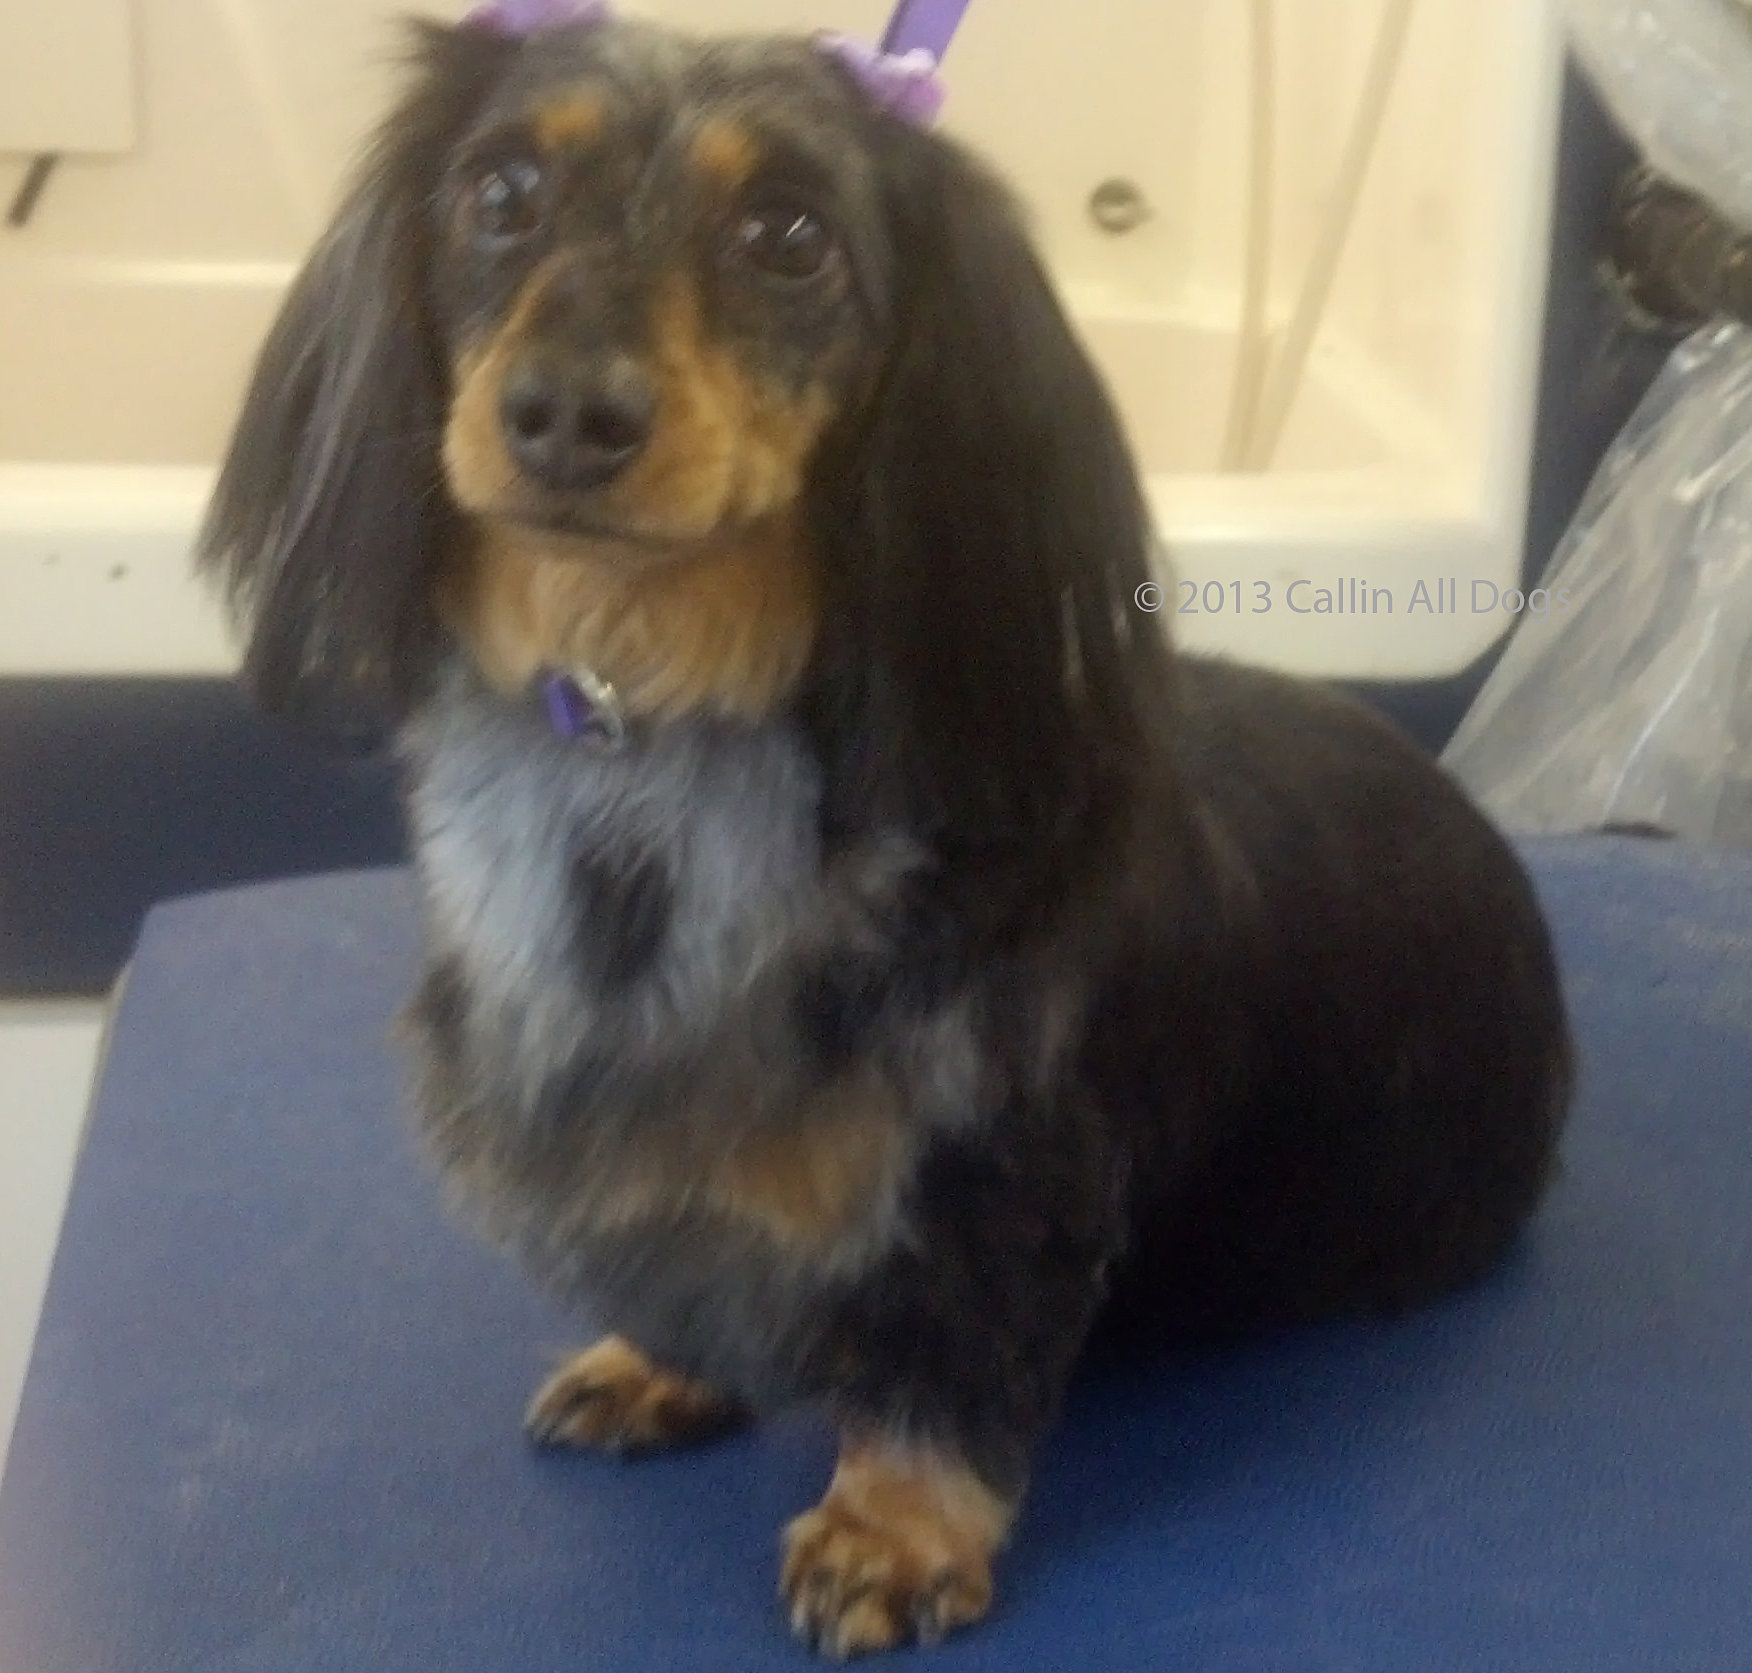 Callin all dogs mobile dog grooming spa osi long haired dachshund